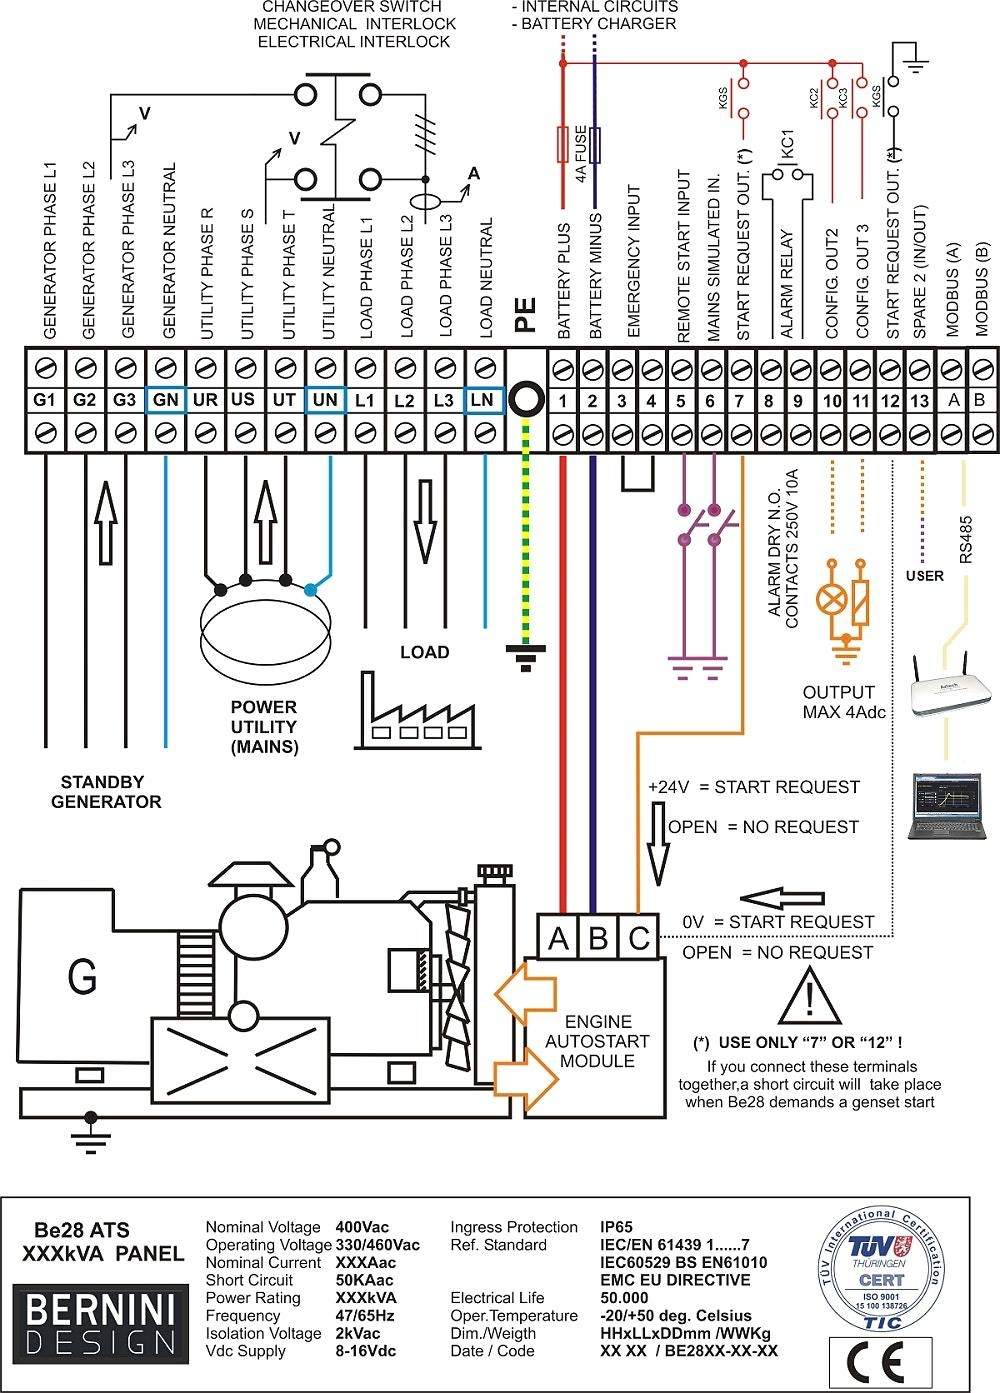 hight resolution of generac ats wiring diagram an transfer switch wiring diagram collection generac automatic transfer switch wiring